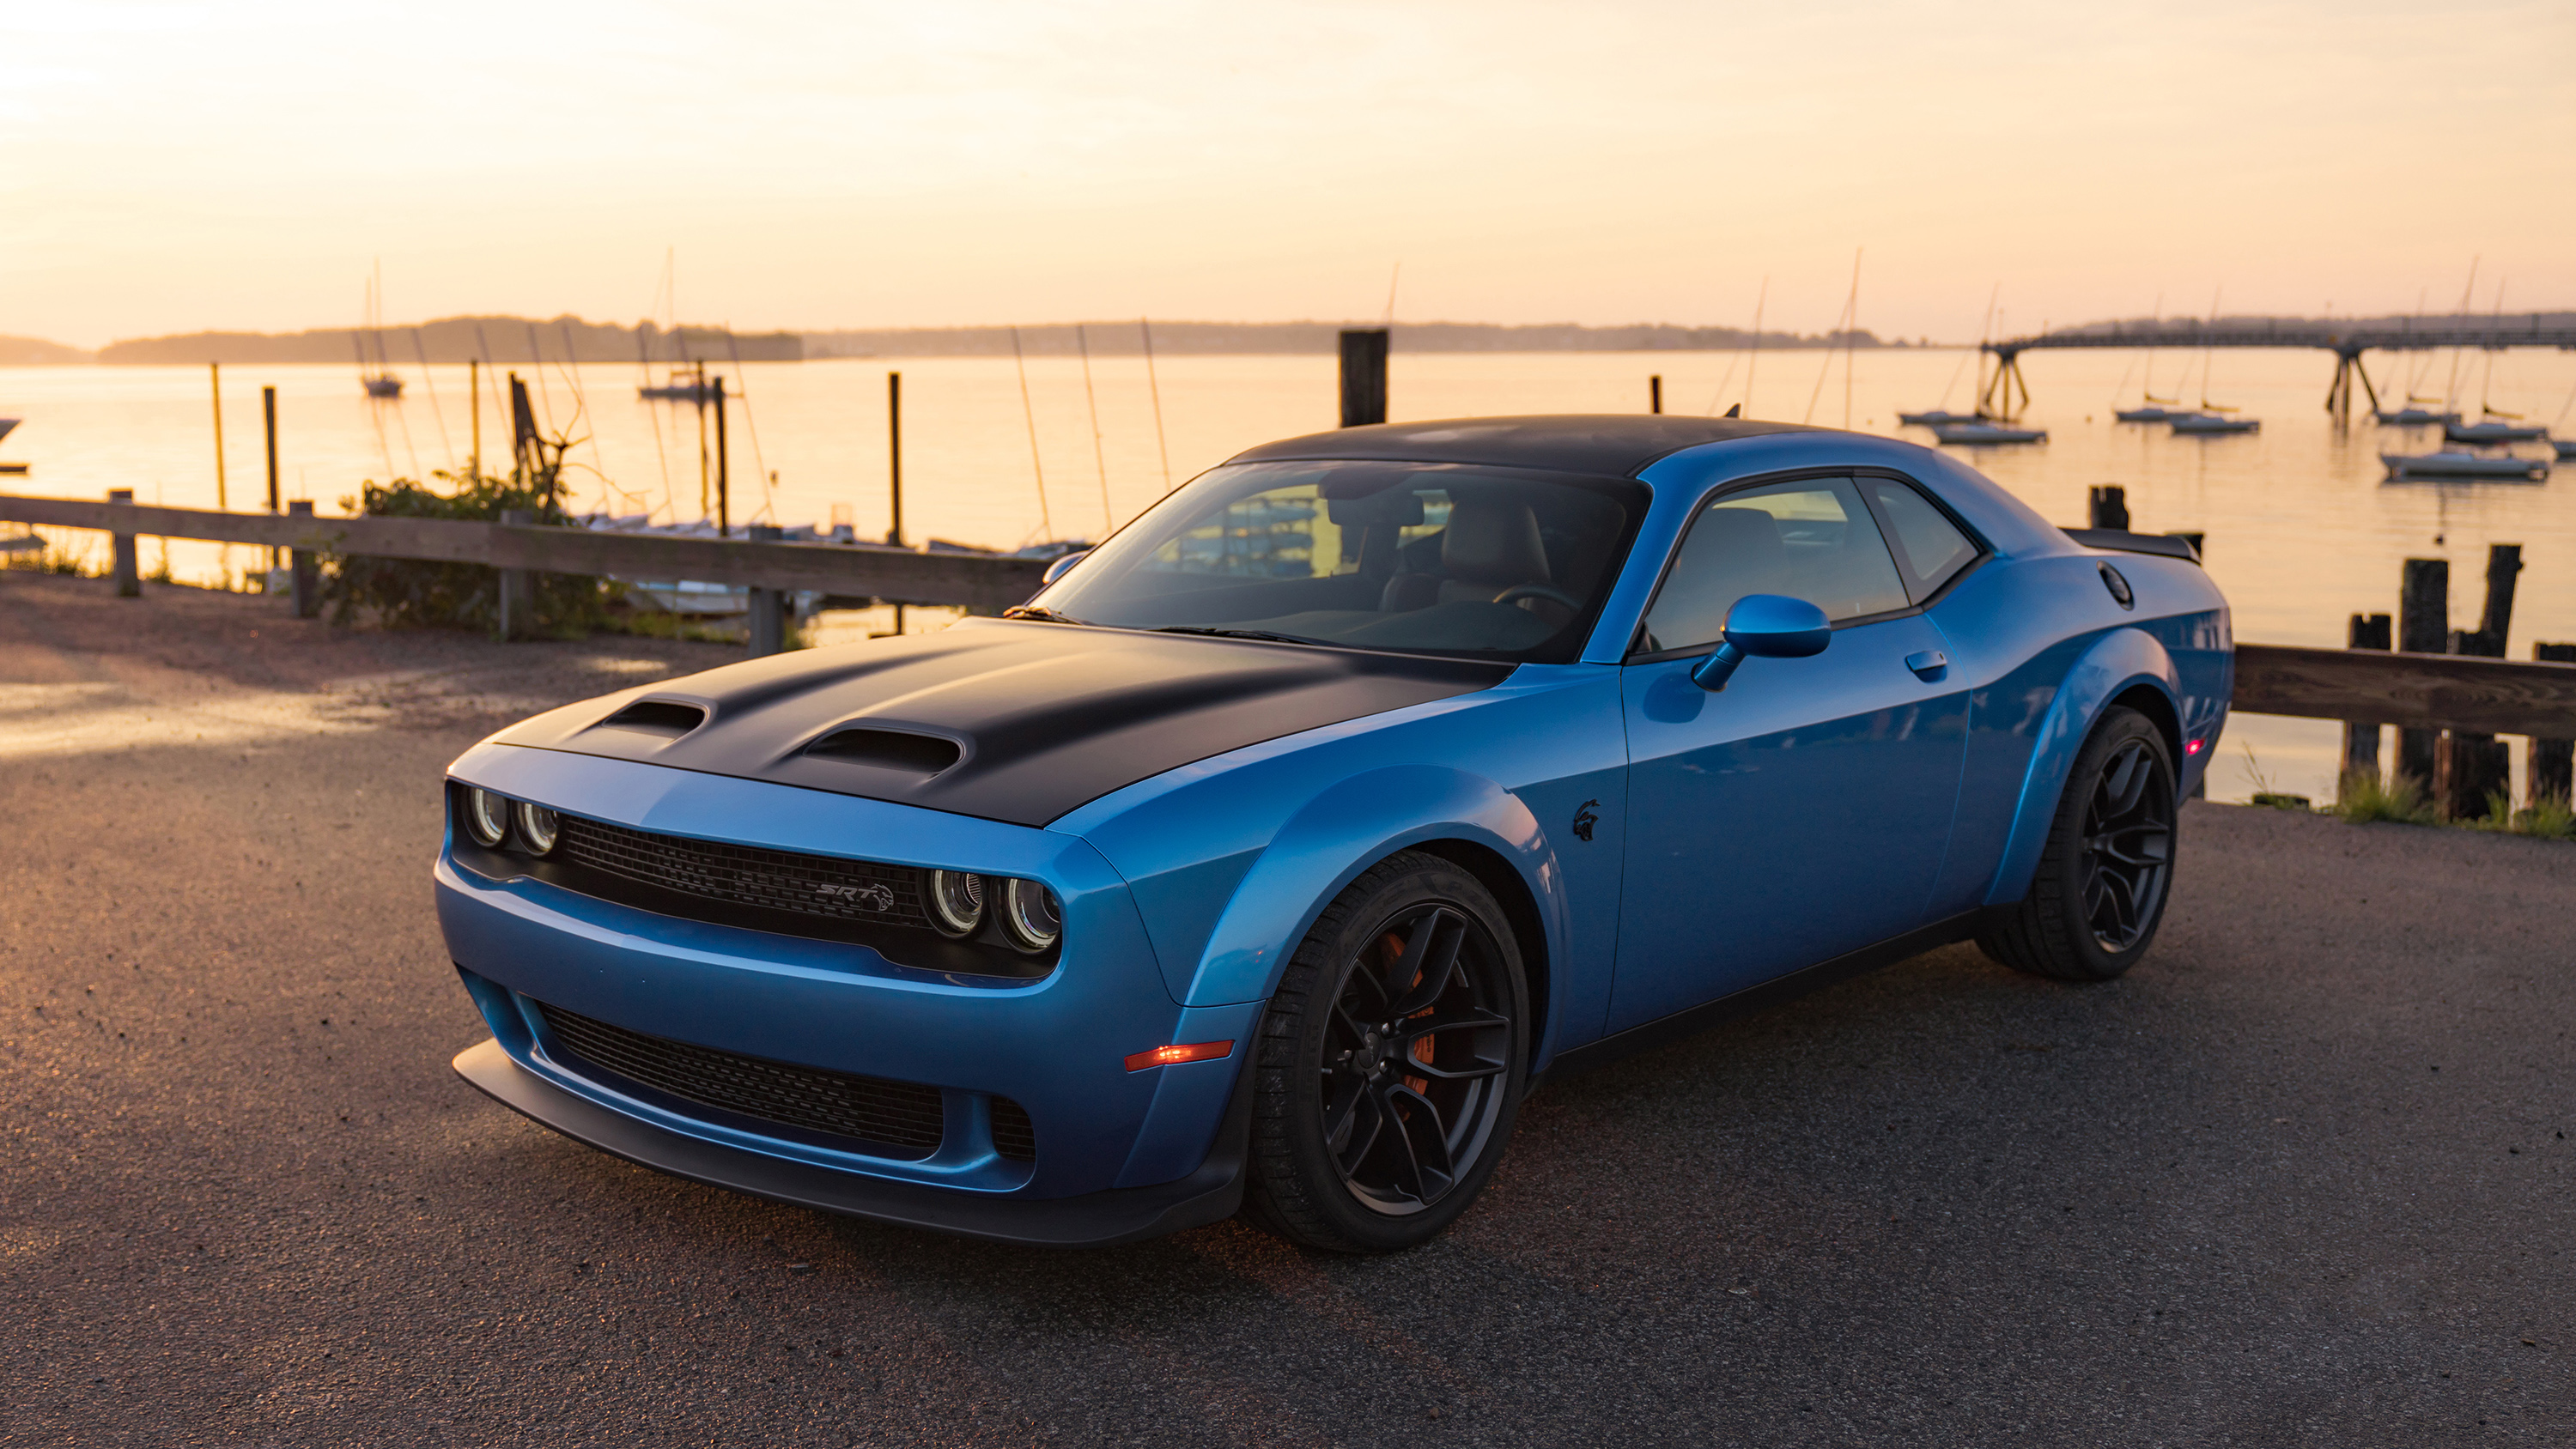 2019 Dodge Challenger Srt Hellcat Redeye Widebody 3 Wallpaper Hd Car Wallpapers Id 11071